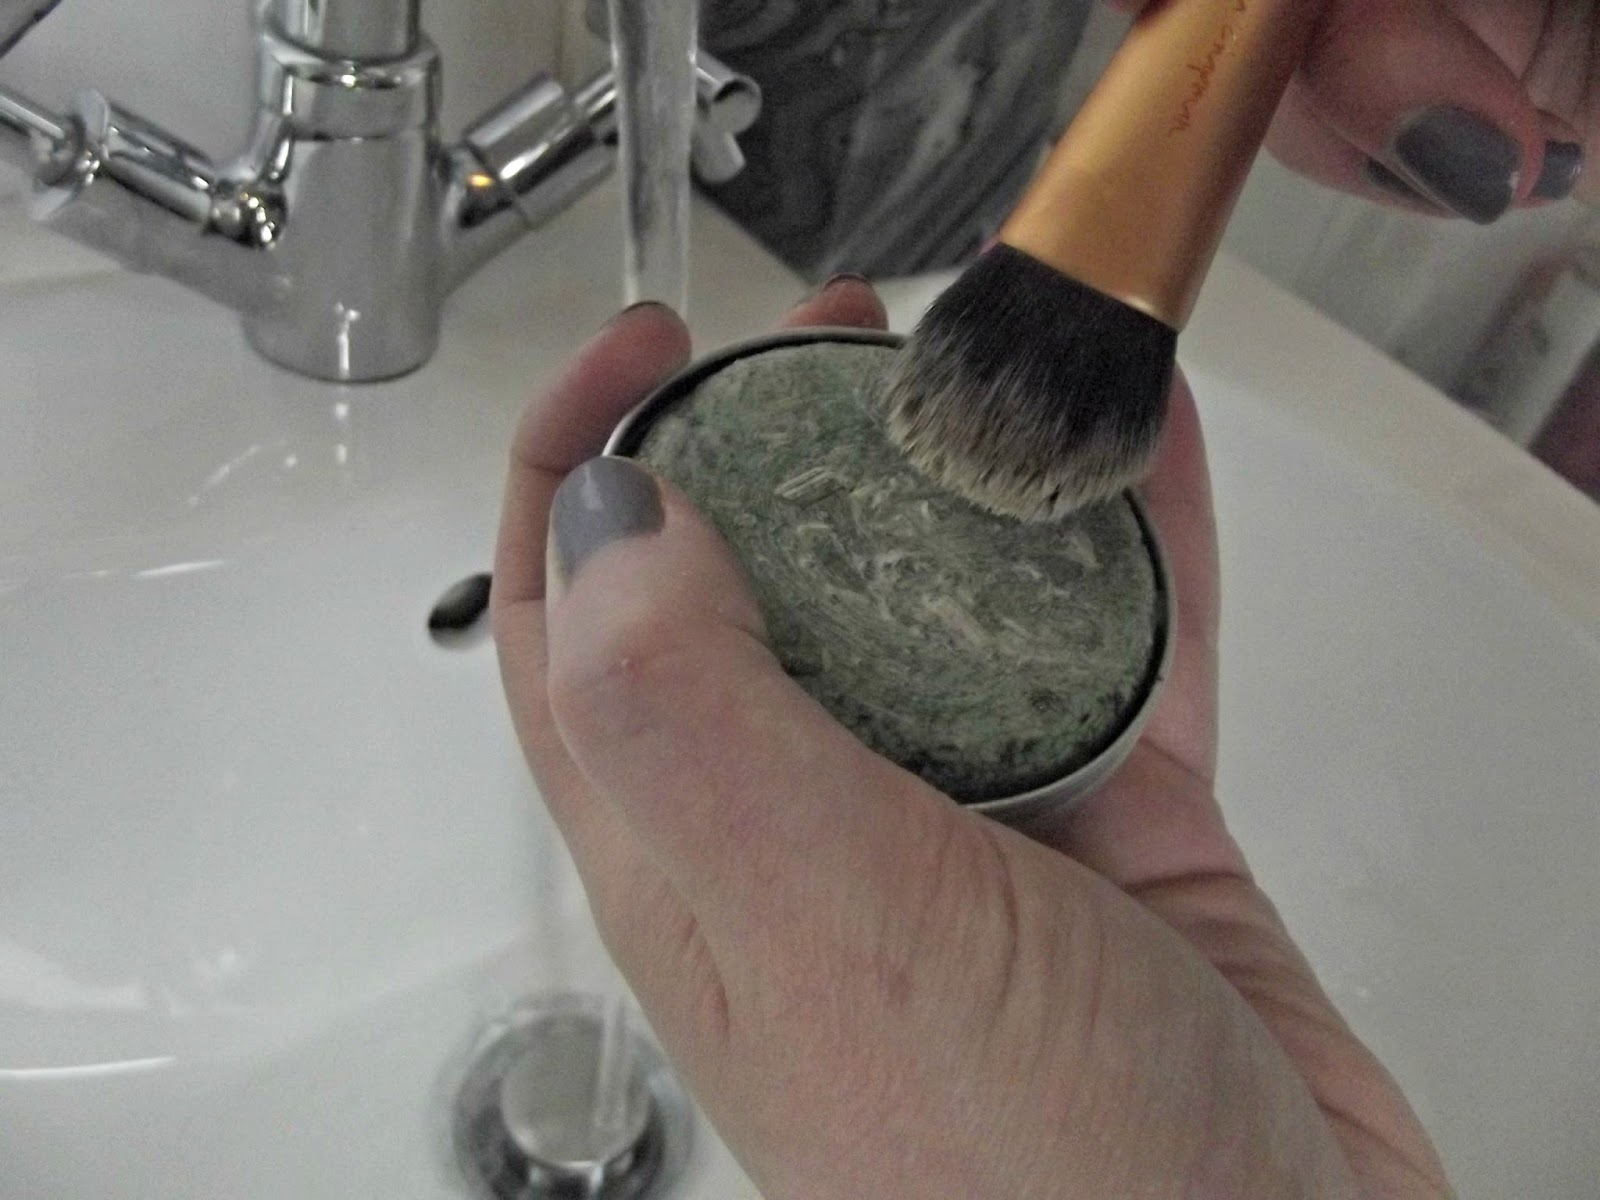 Cleaning my Real Techniques brushes with Lush Squeaky Green shampoo bar